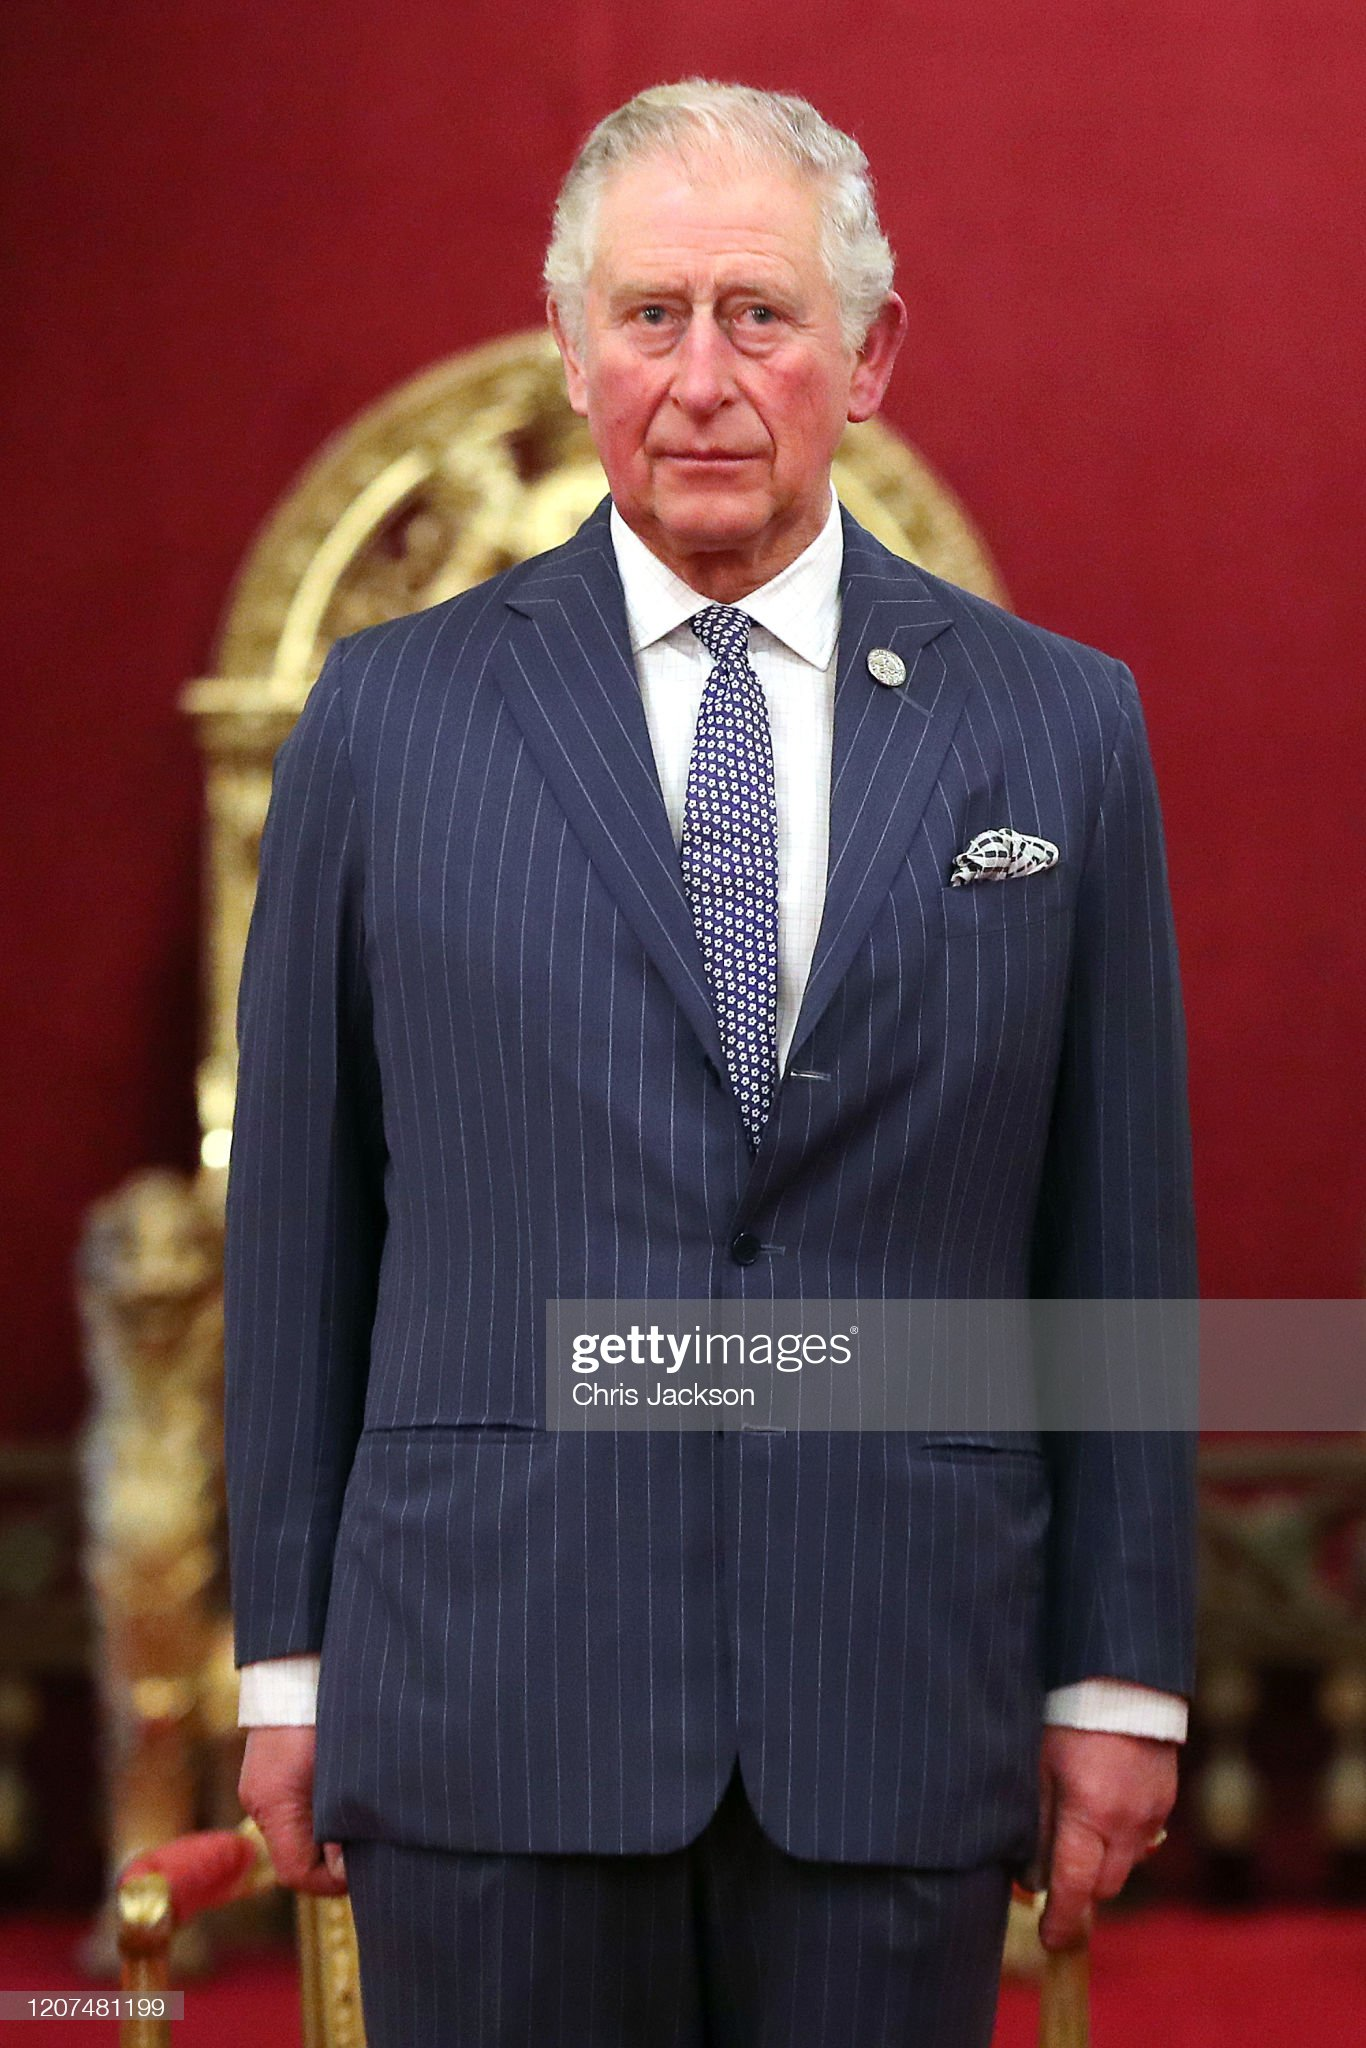 prince-charles-prince-of-wales-in-the-ballroom-during-the-the-queens-picture-id1207481199